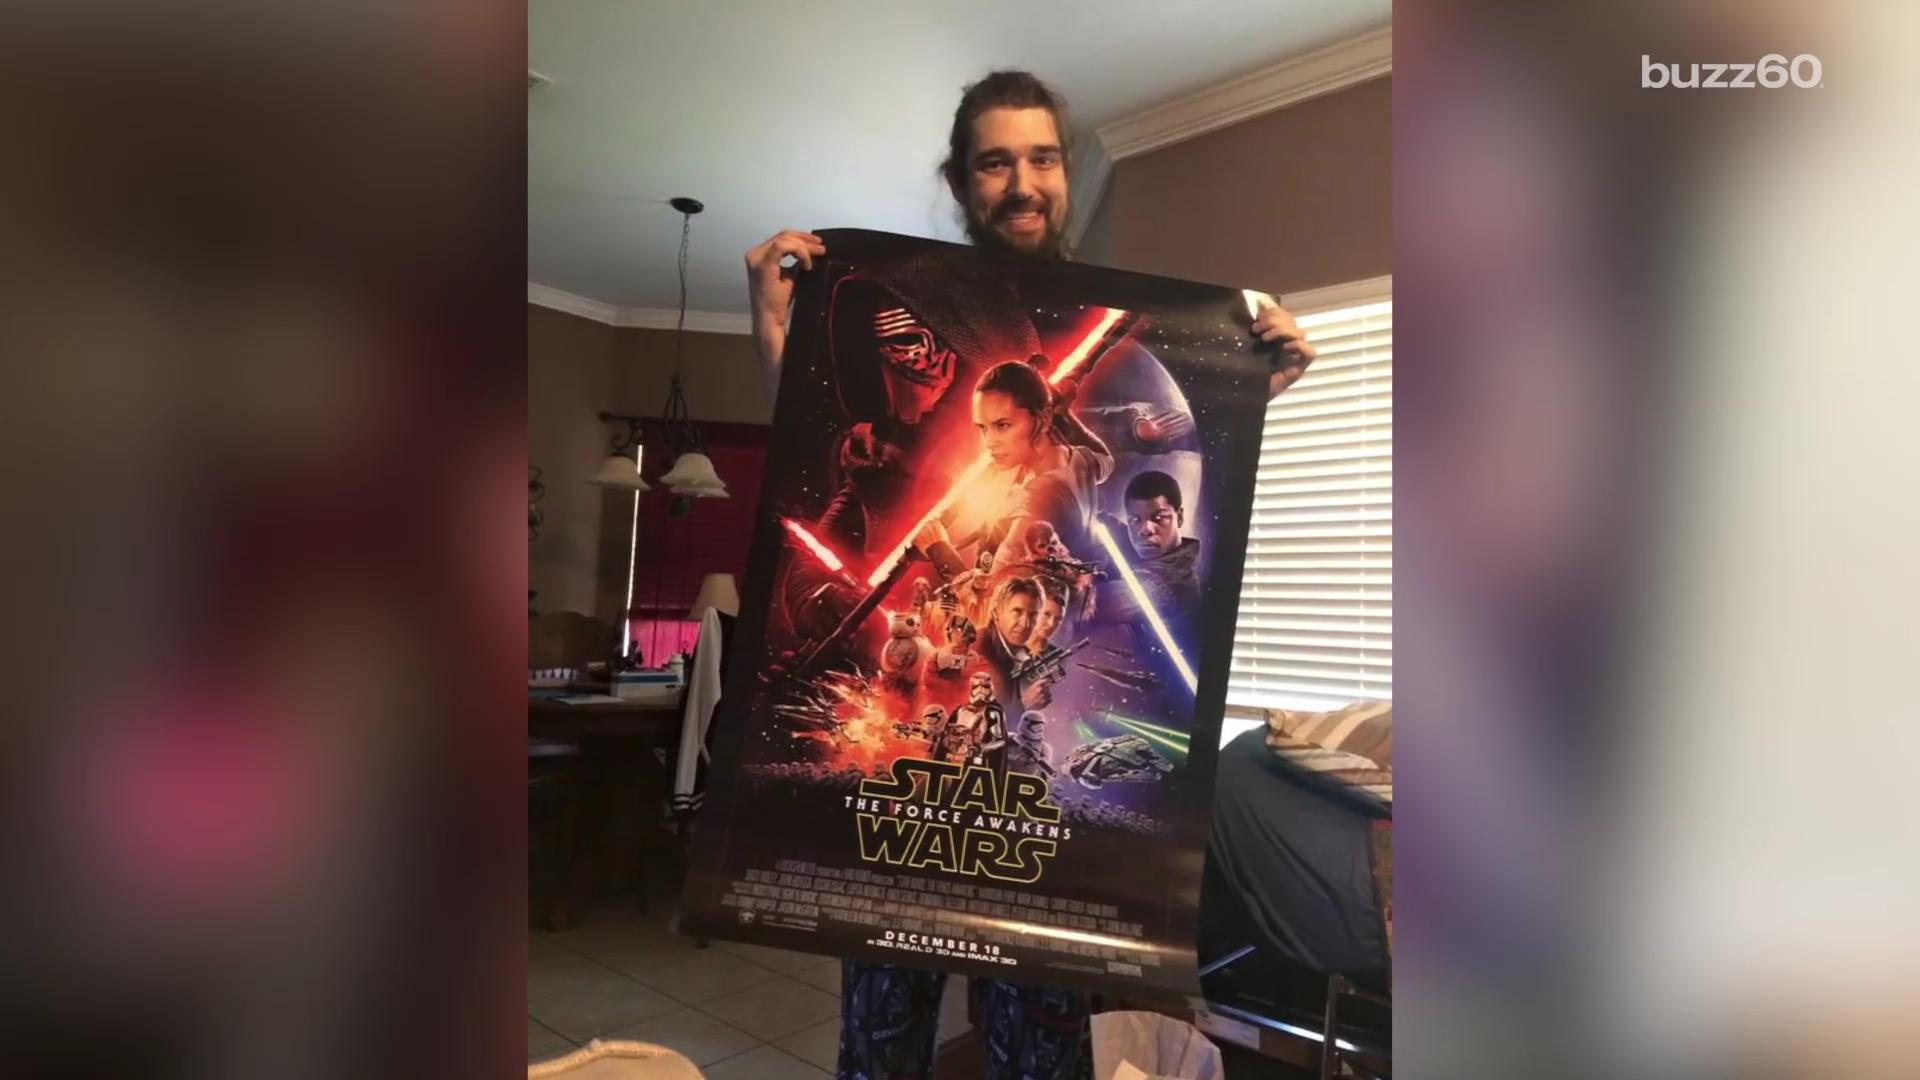 'Star Wars' director grants dying fan's wish to see 'The Force Awakens' early